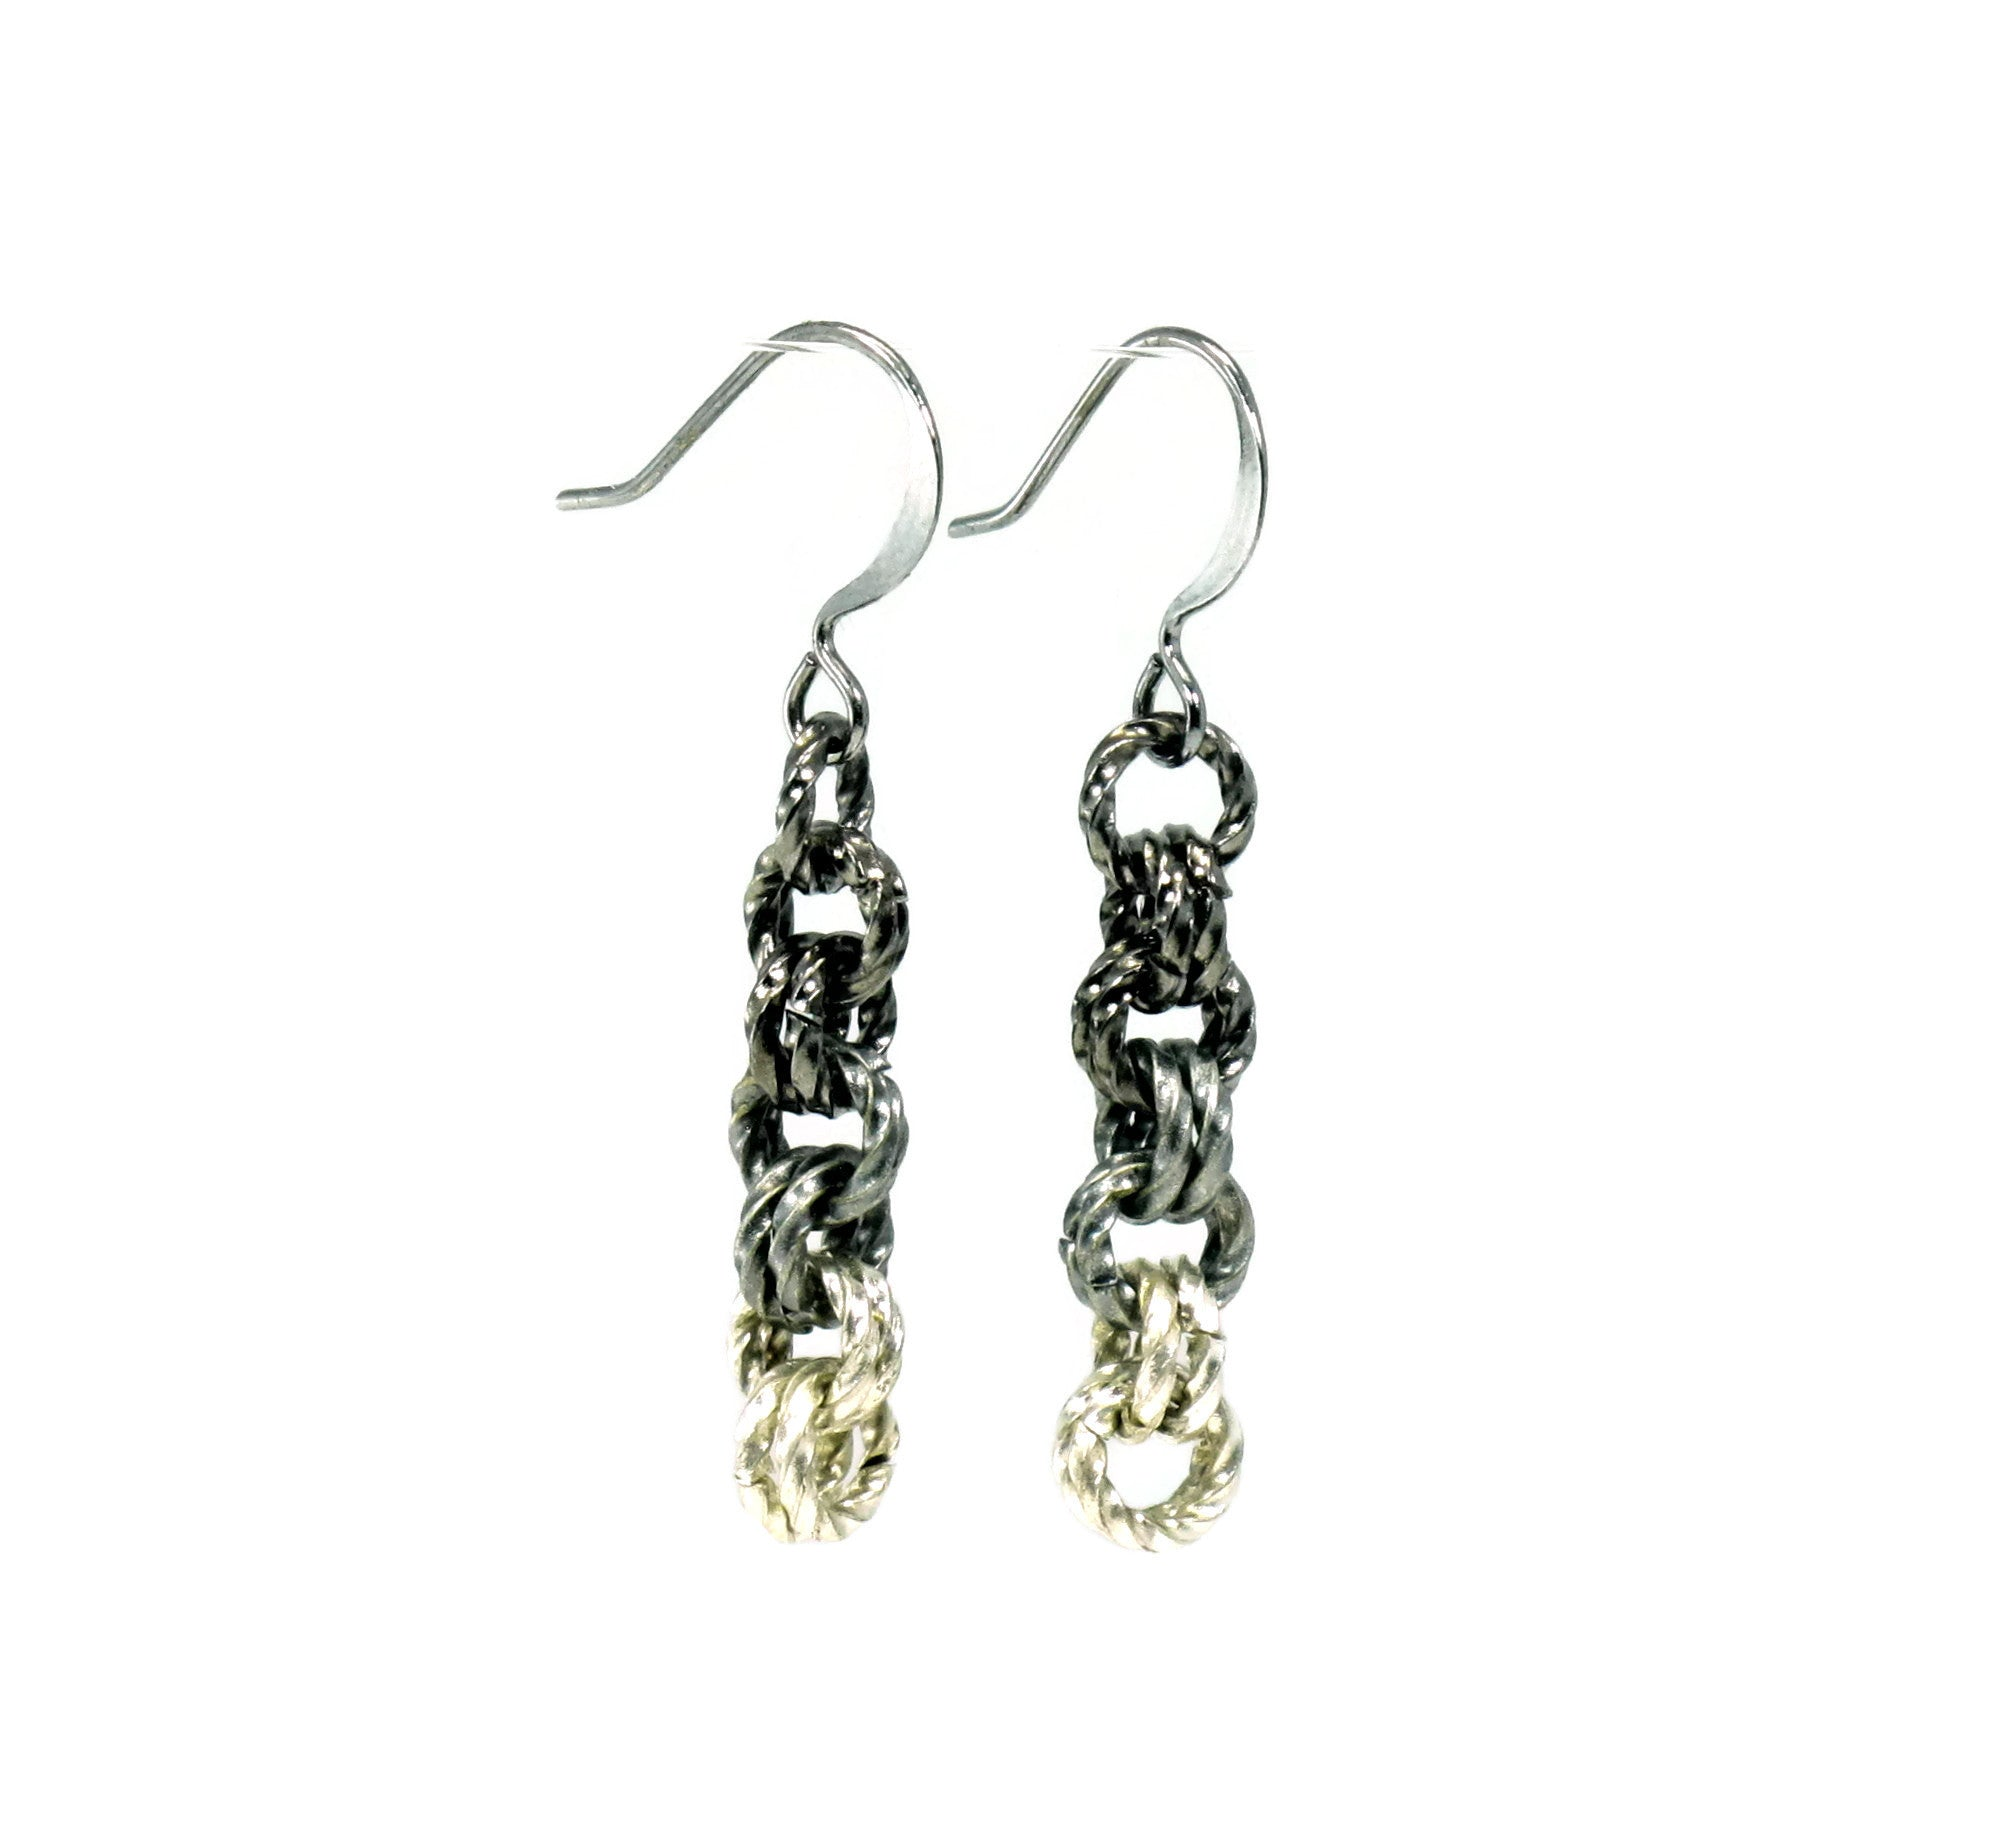 DIY Chain Mail Gunmetal Antique Silver Ombre Earrings Kit